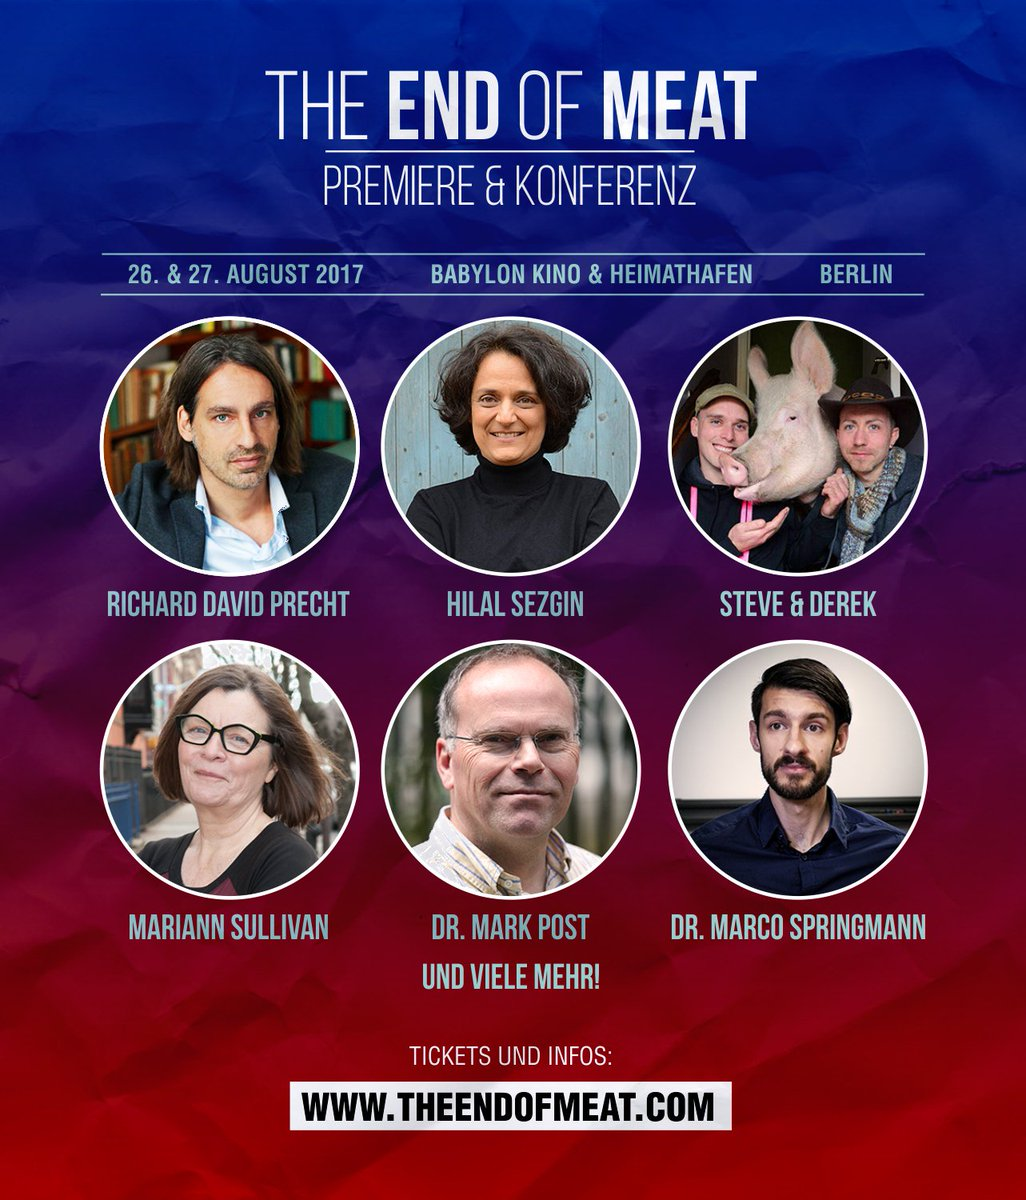 Only one week until our #premiere and #conference in Berlin! We&#39;re so excited! We still have a few tickets left:  http://www. theendofmeat.com/en/premiereund konferenz.html &nbsp; … <br>http://pic.twitter.com/hzCYInoX31